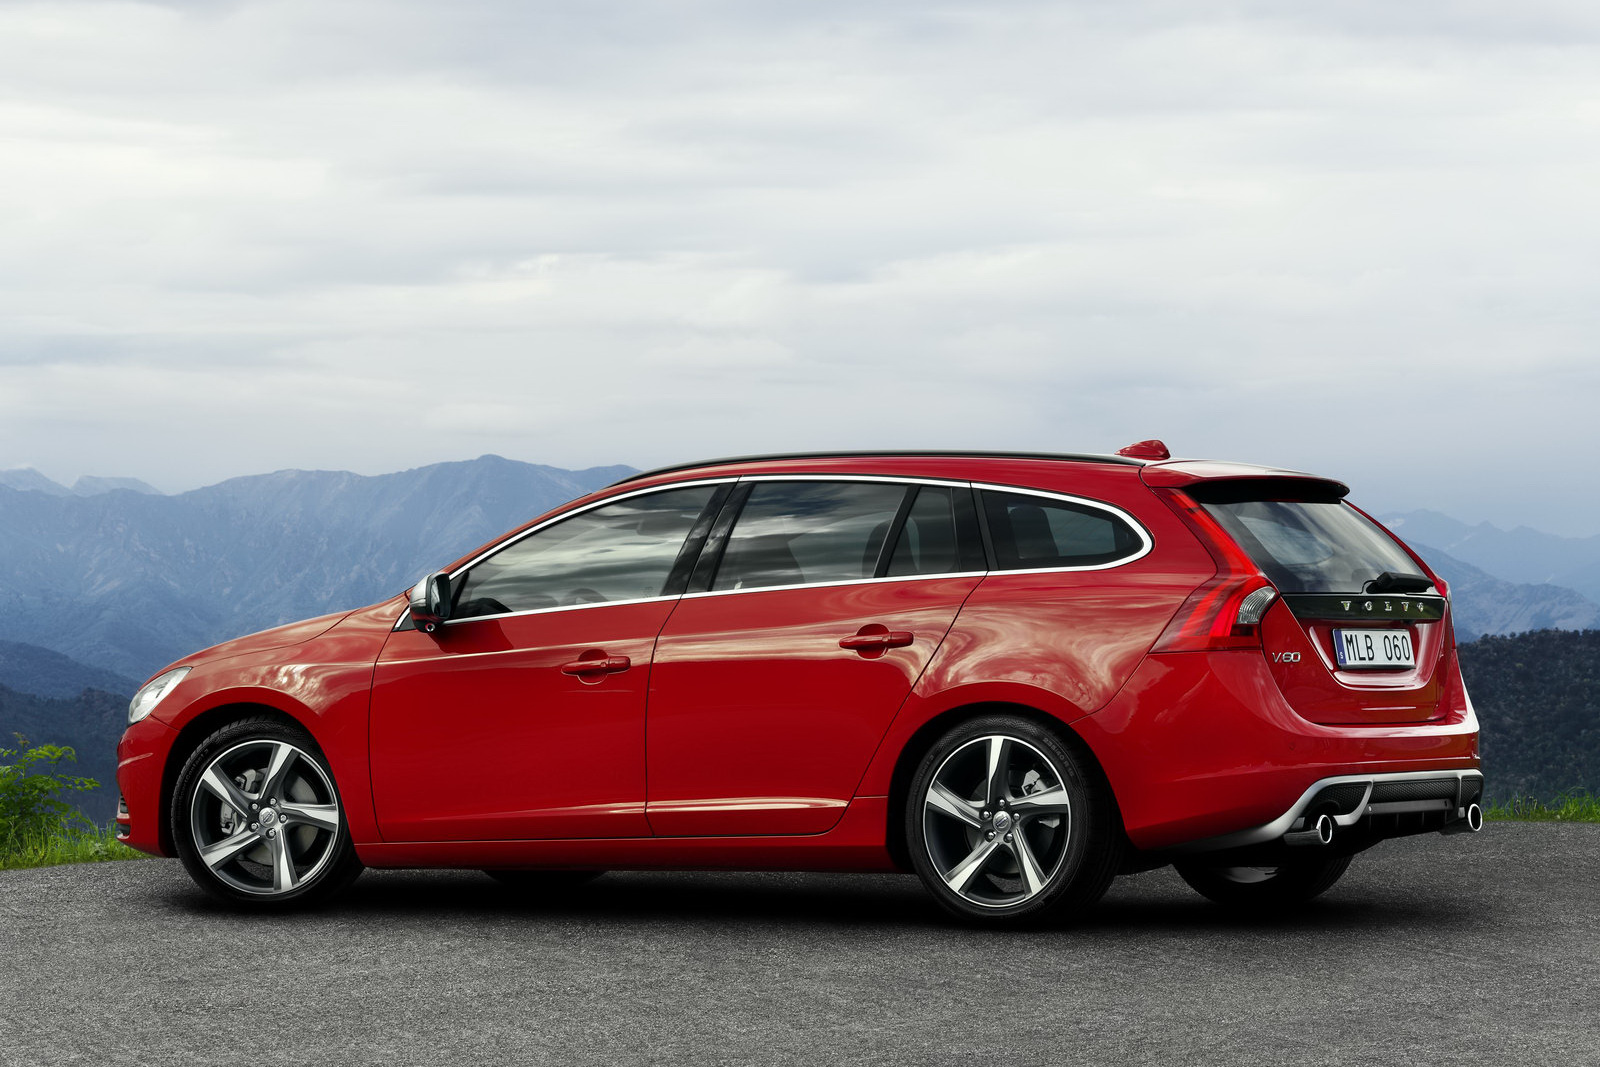 volvo v60 Archives - The Truth About Cars